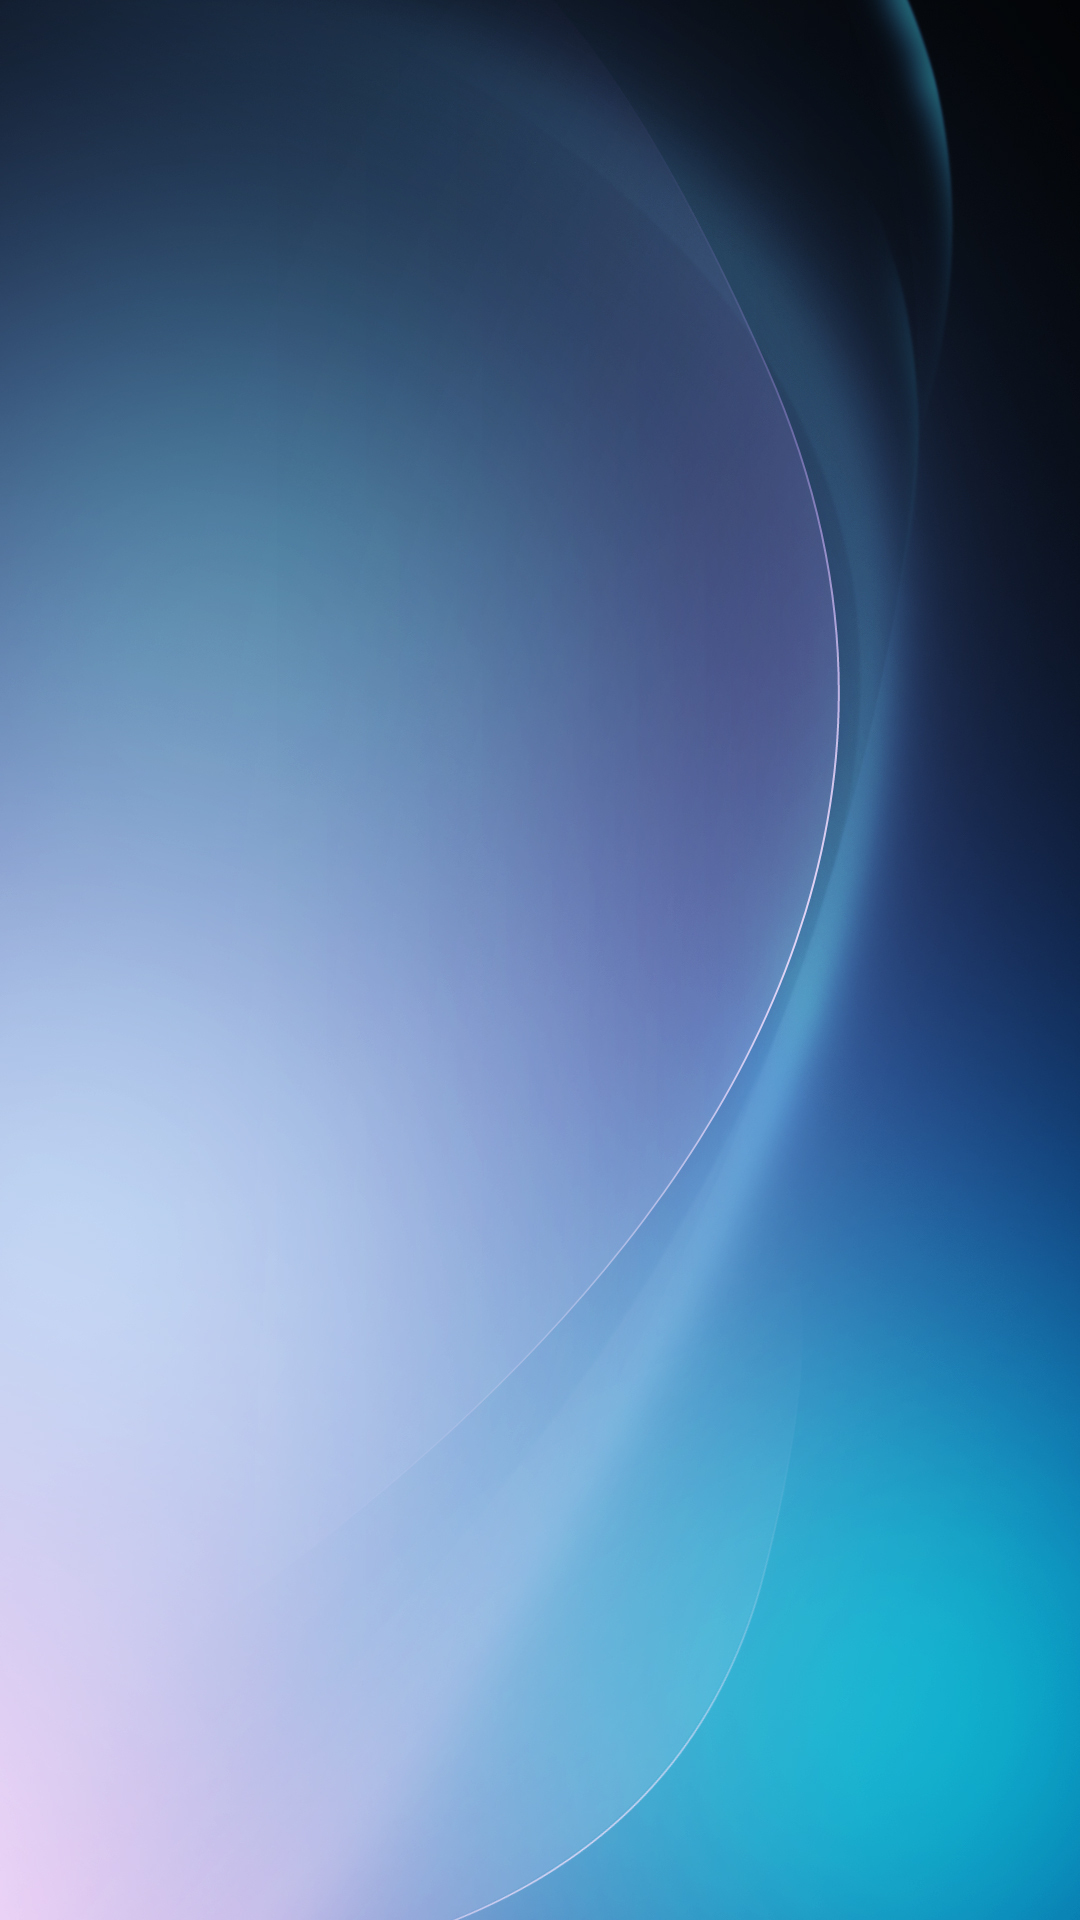 Abstract Blue Wave Android Wallpaper download 1080x1920